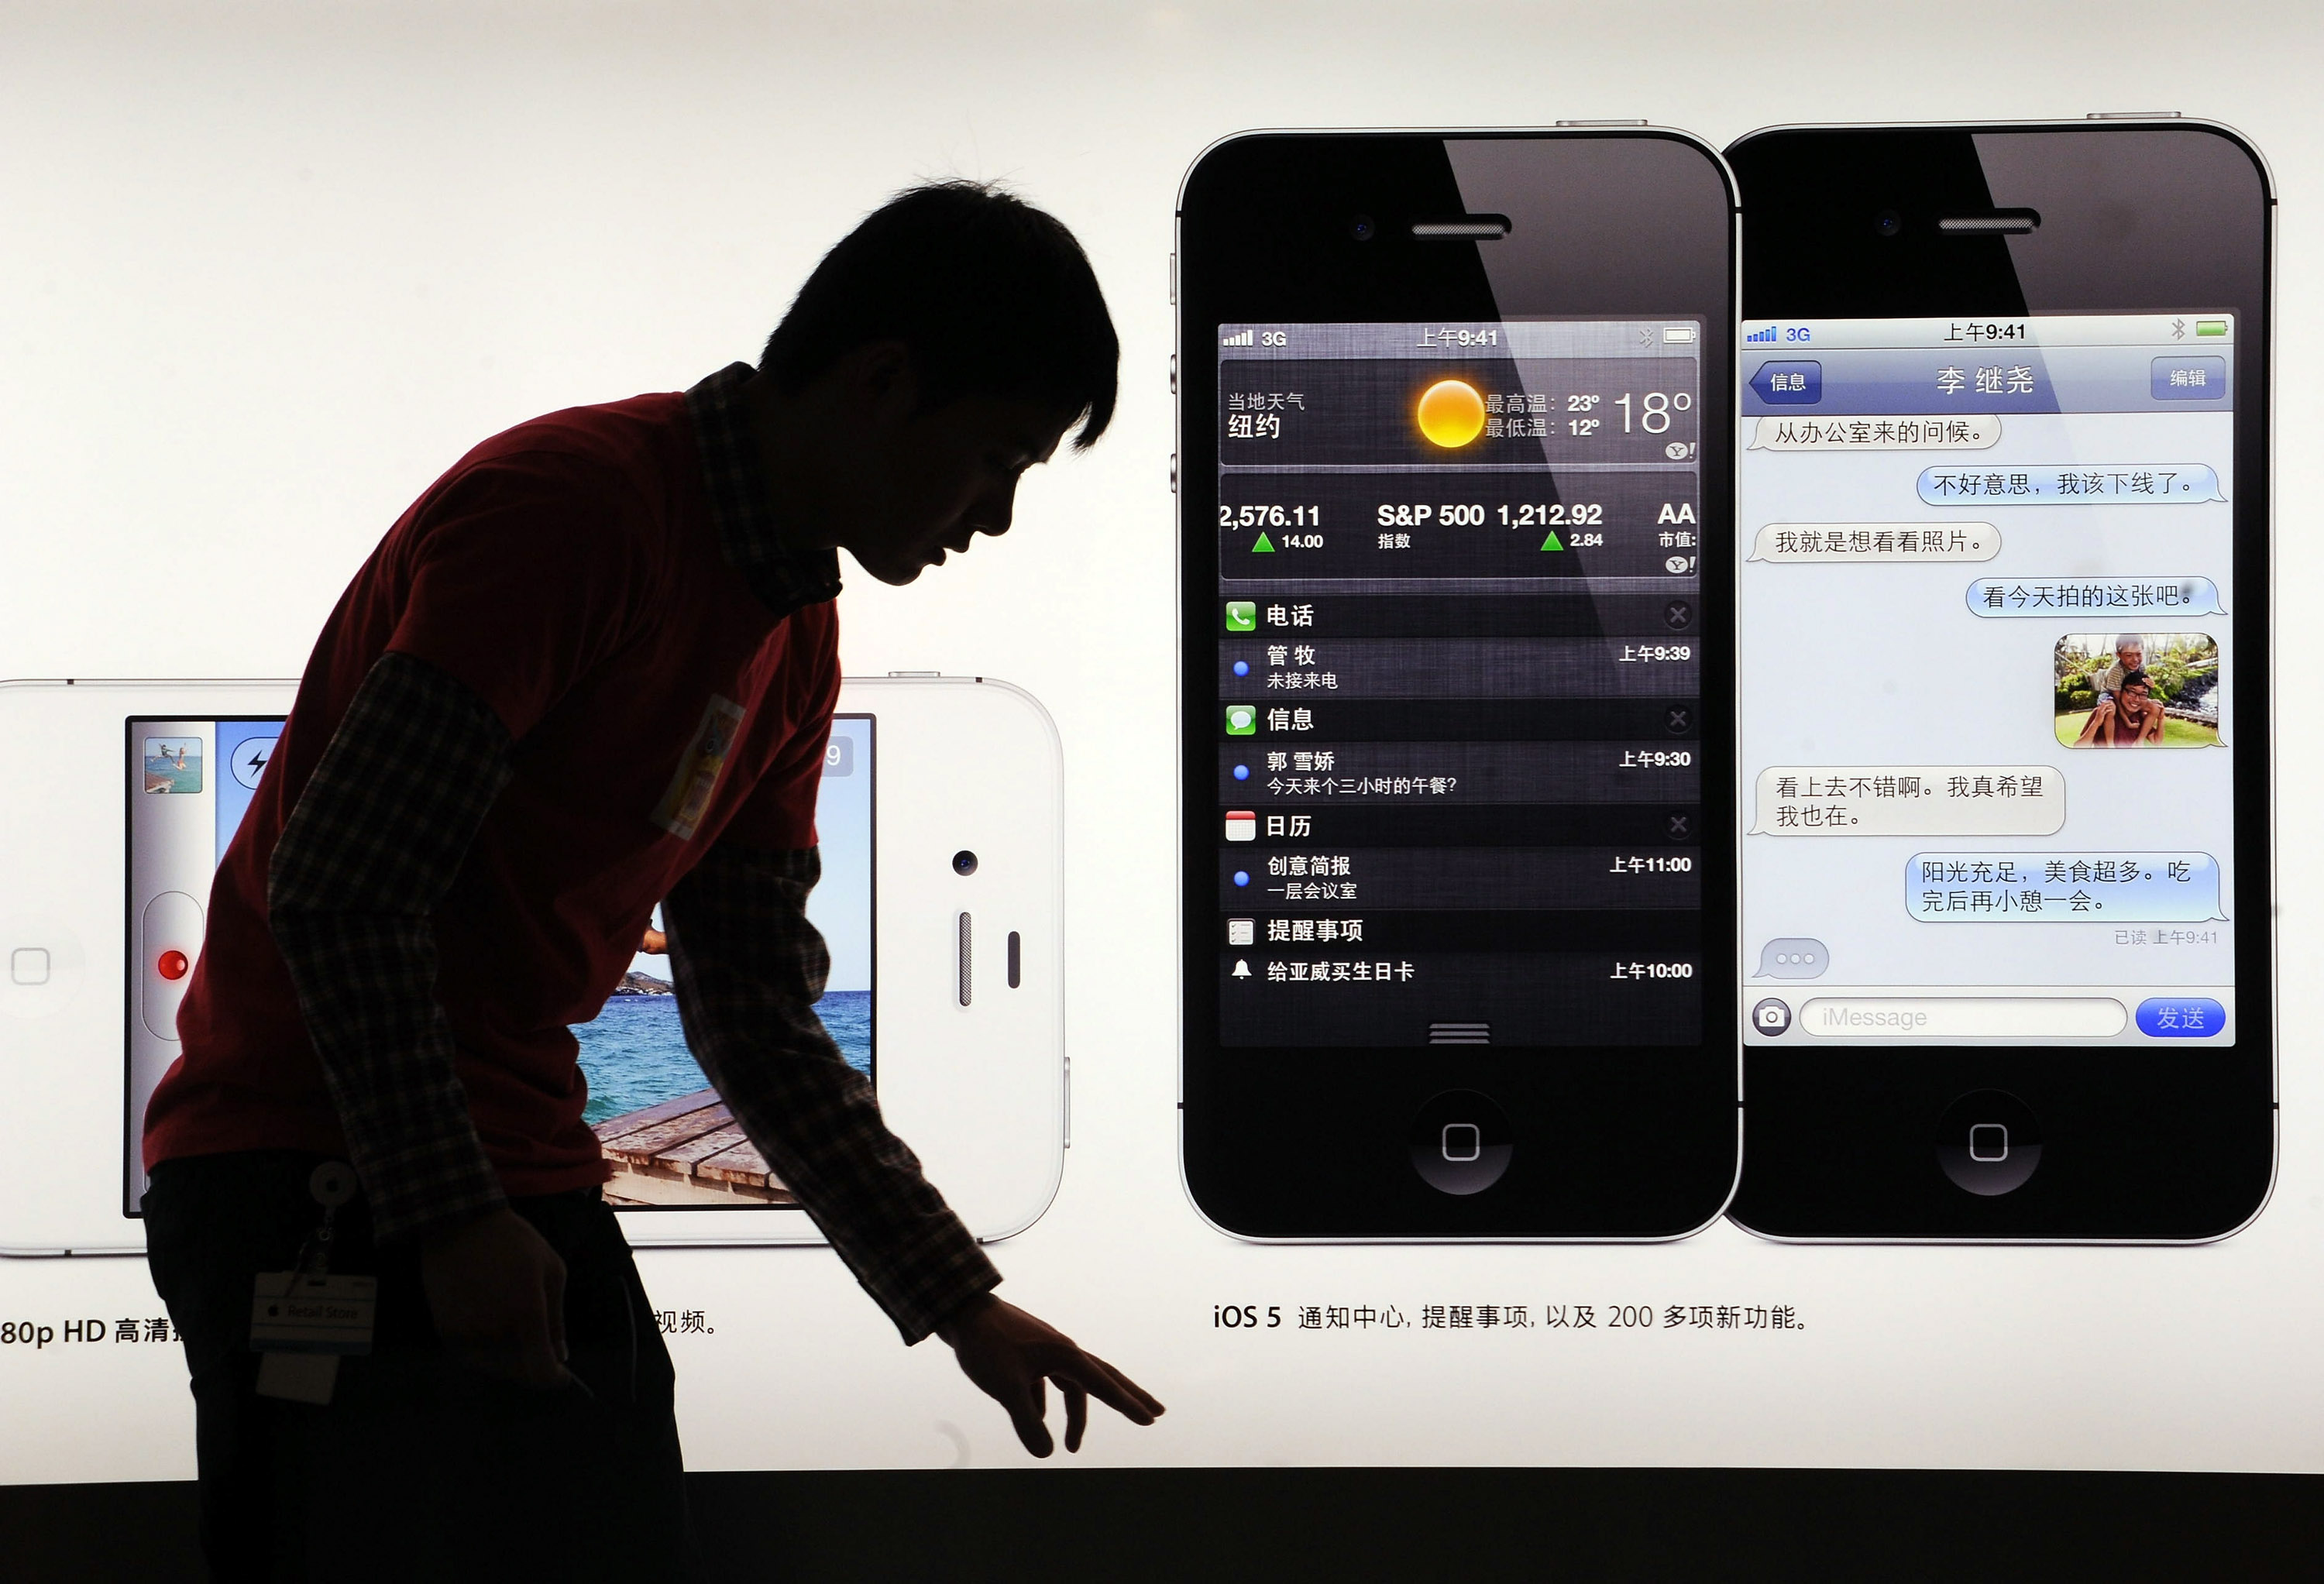 People wait outside an Apple store all night prior to the mainland release of iPhone 4S on January 12, 2012 in Beijing, China.